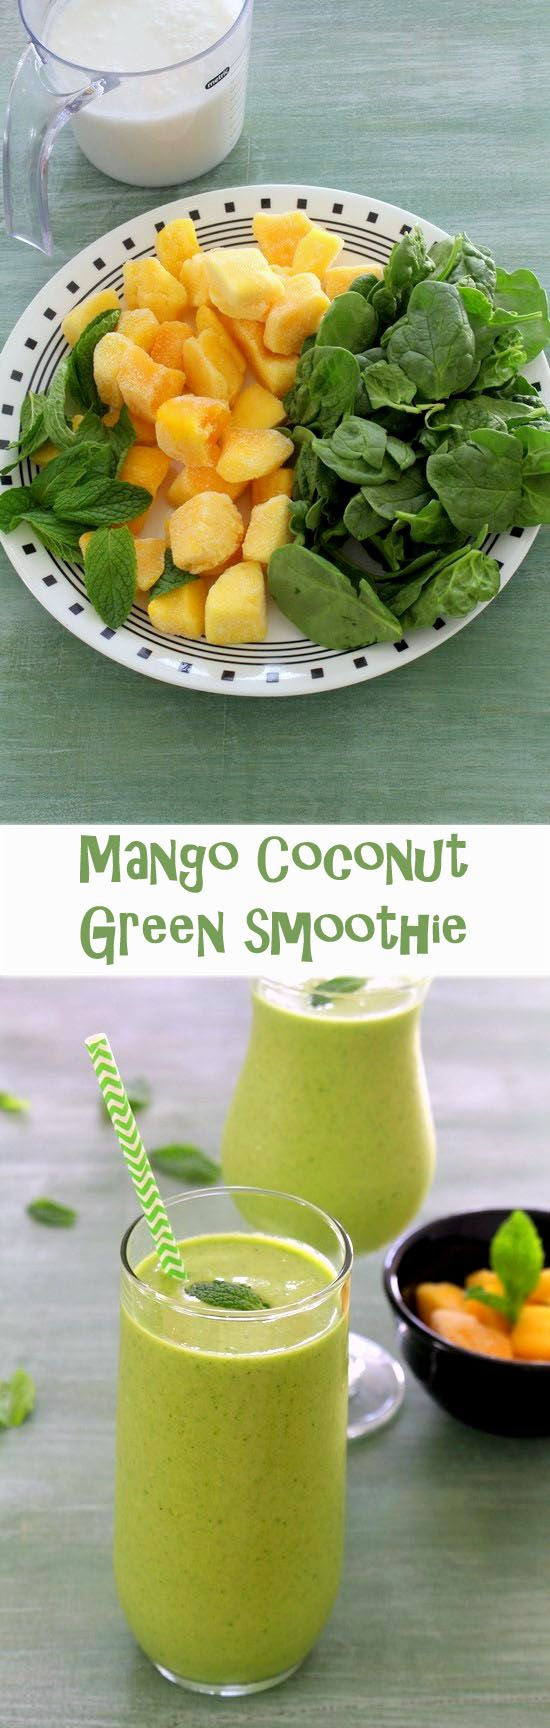 Mango green smoothie recipe - 4 ingredients healthy smoothie with tropical flavors.